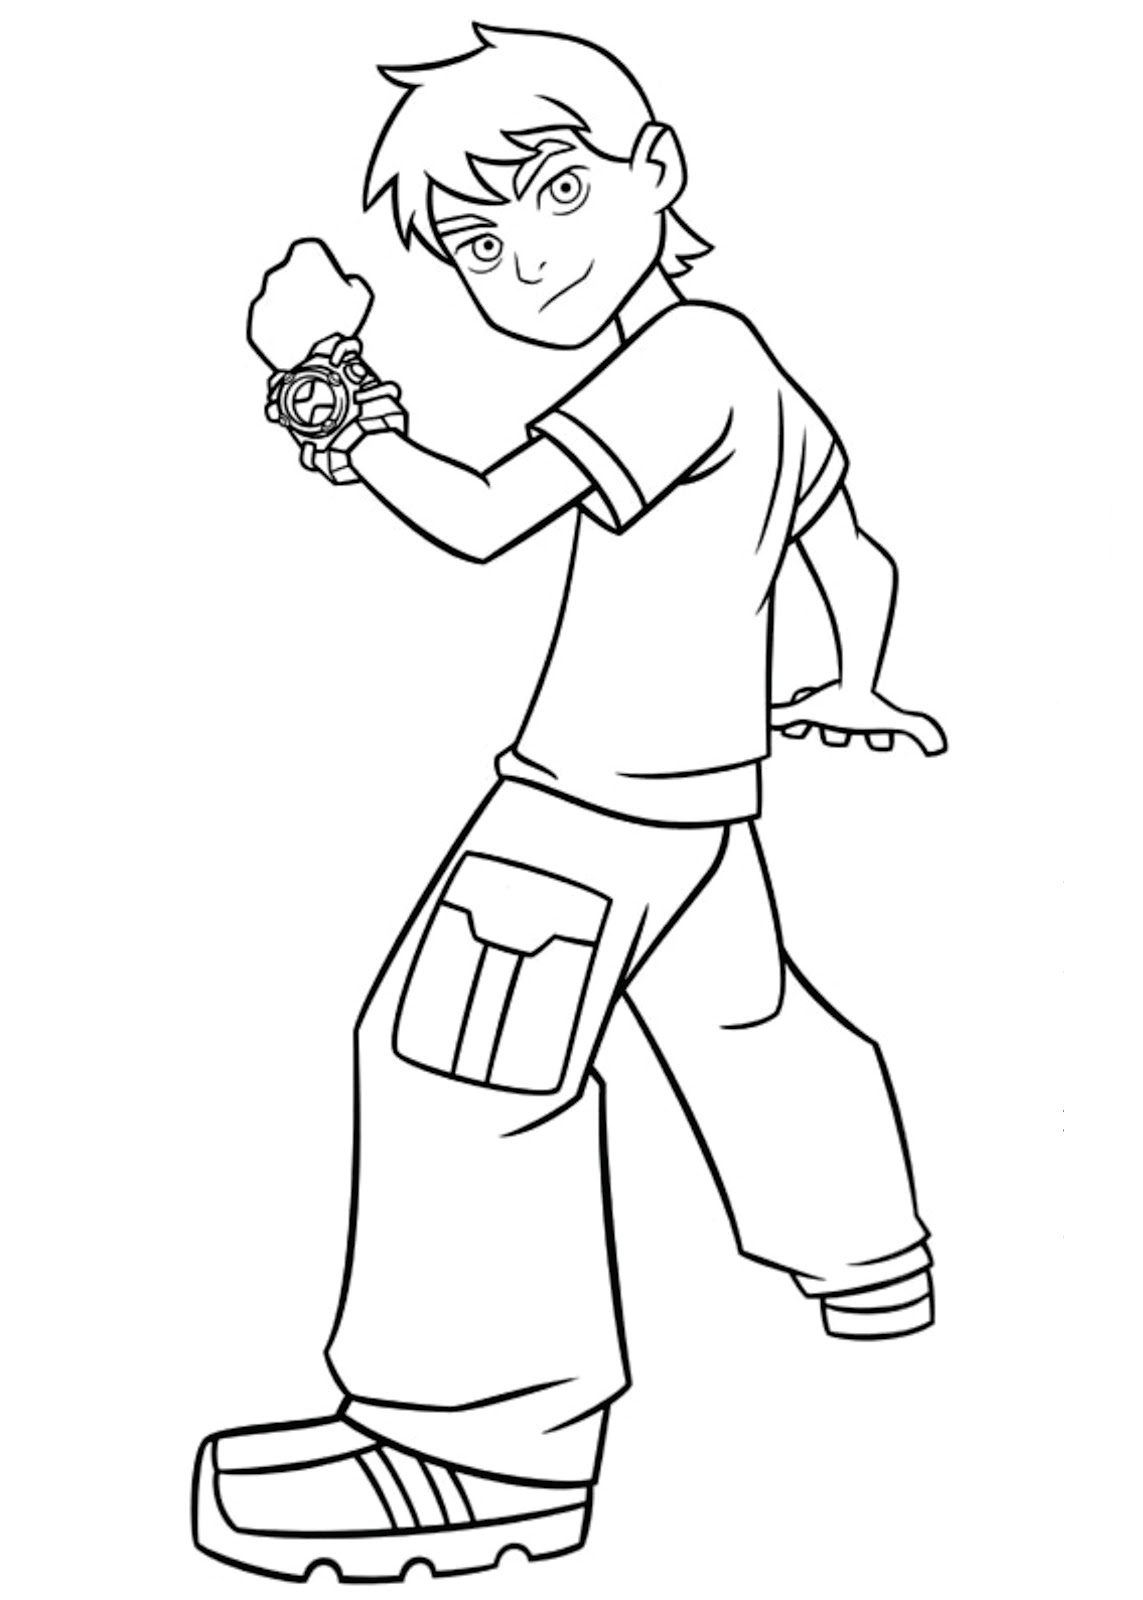 ben 10 coloring book games ben10 75 coloring page free ben 10 coloring pages coloring games ben book 10